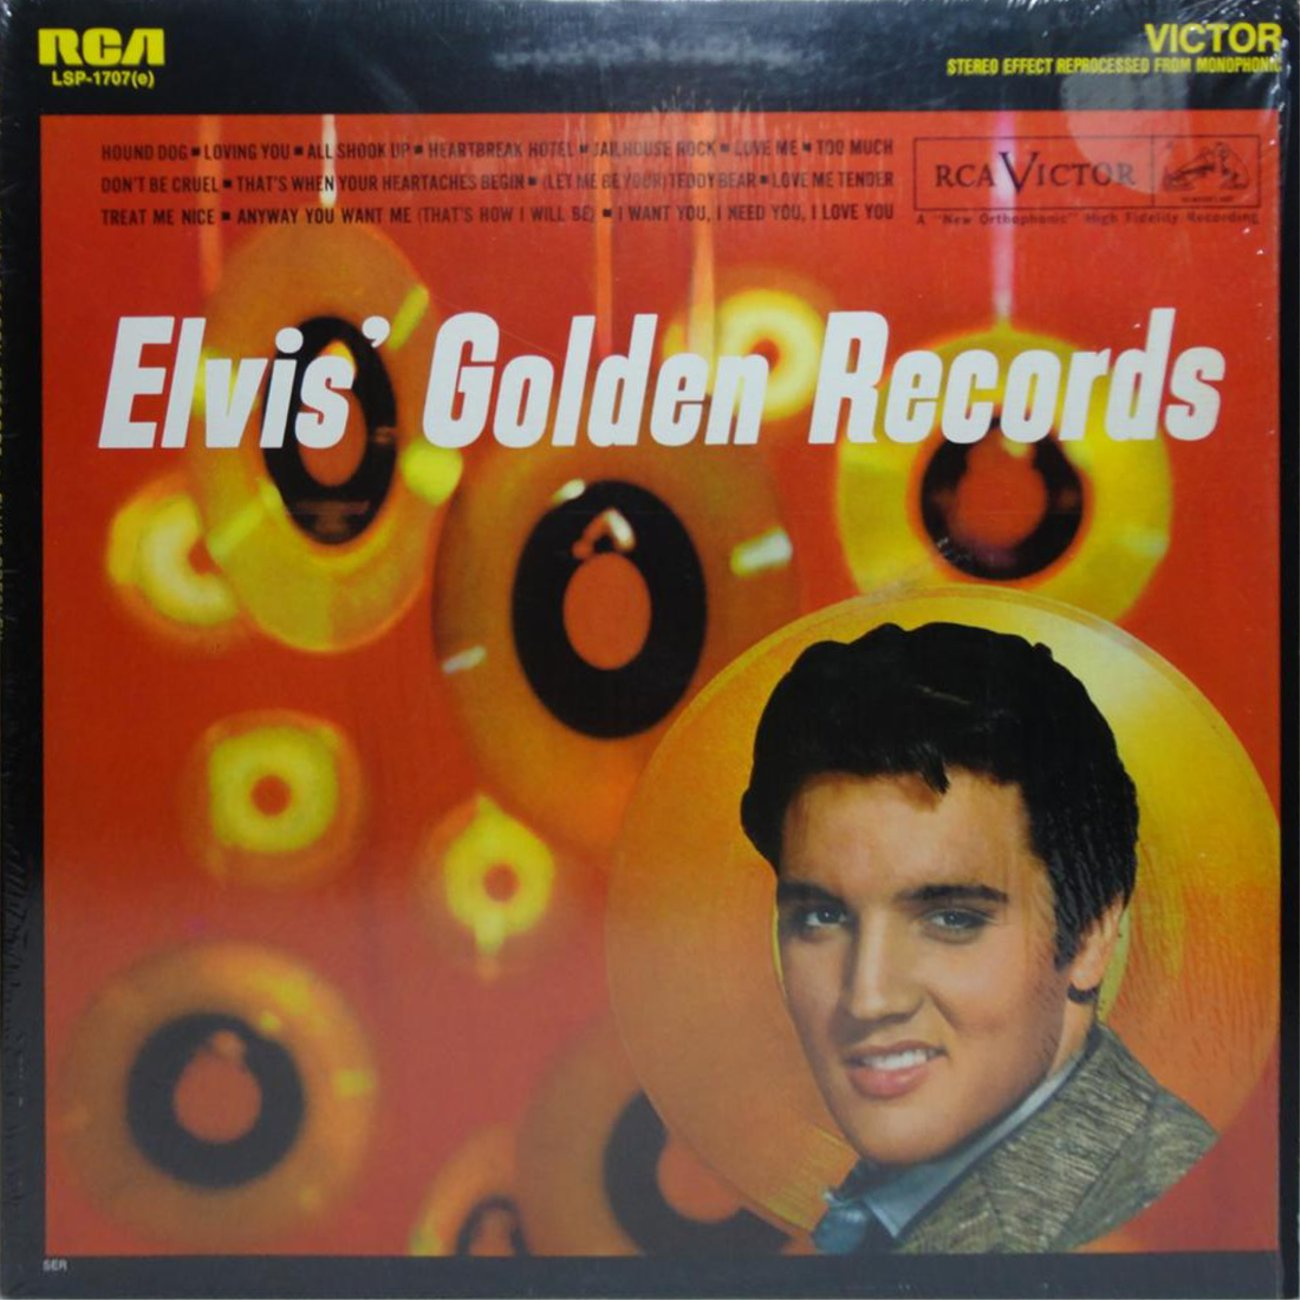 ELVIS' GOLD RECORDS  Lsp1707as8kcm